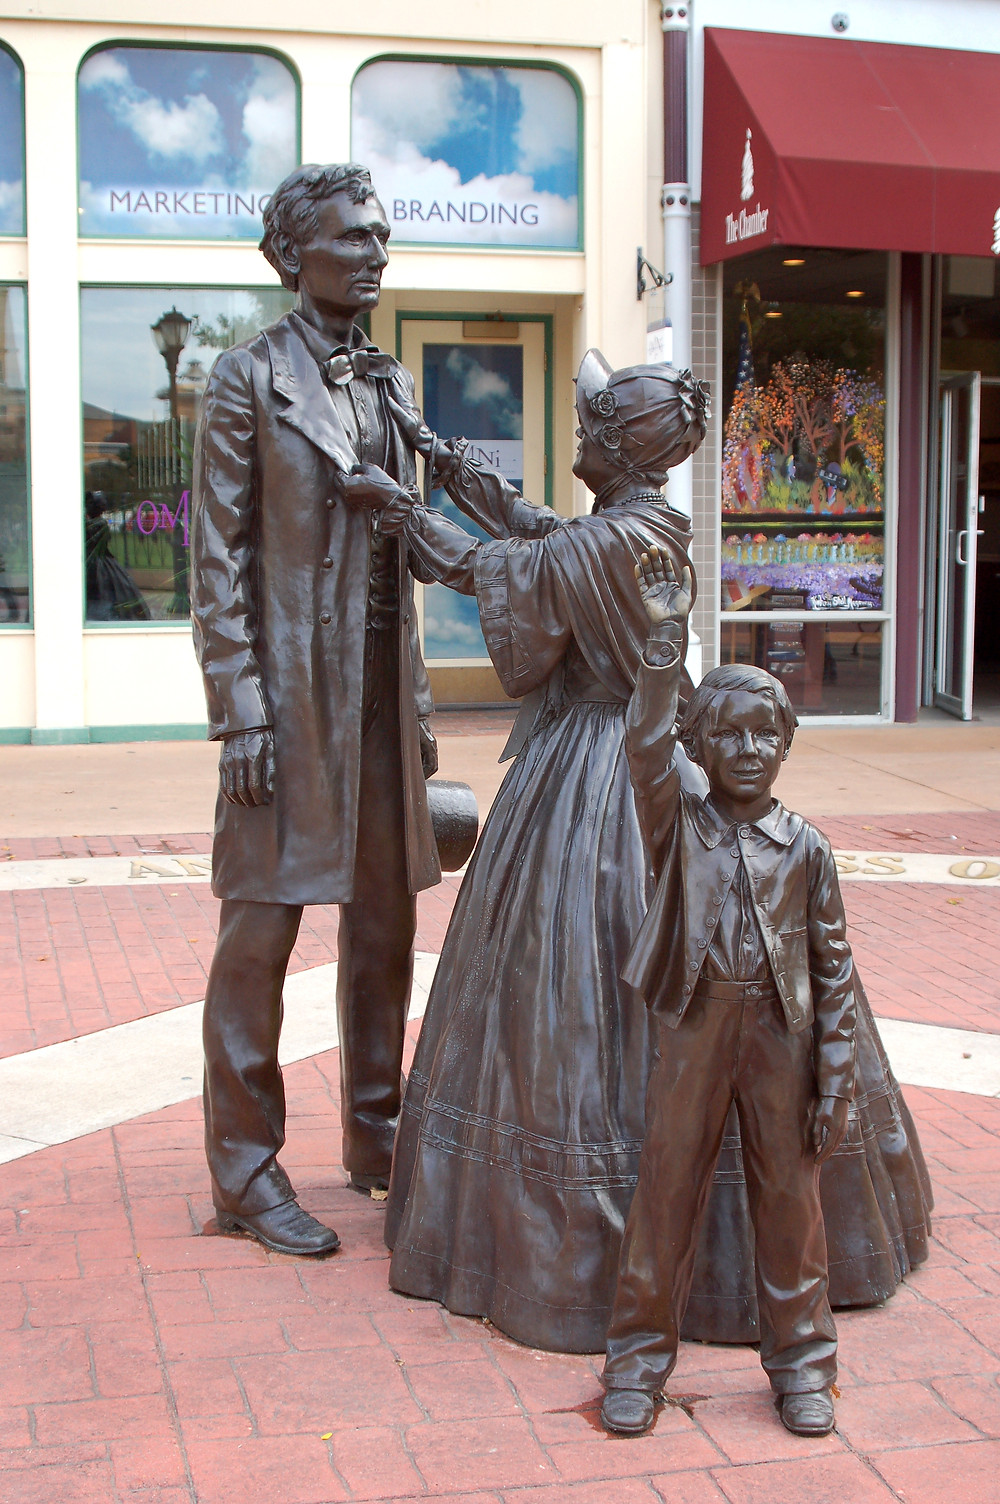 Statue of Mary Todd, Abraham and their young son.